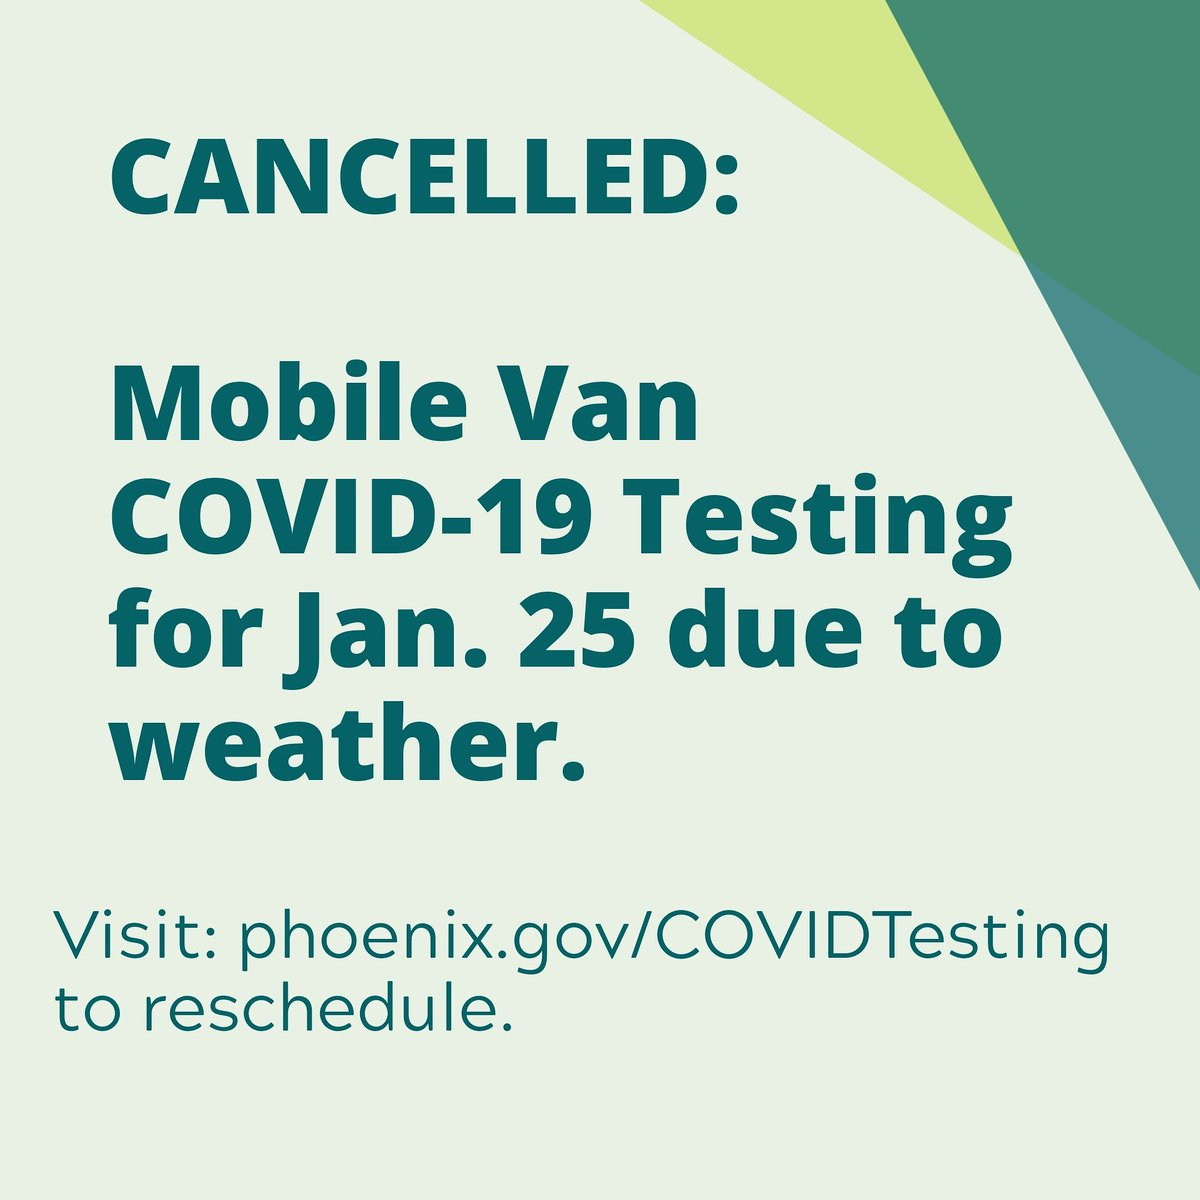 Due to weather, #COVID19 testing for today, Jan. 25,  provided by the Mobile Testing Van has been cancelled. Extra testing times have been added this week to accommodate reschedules. Go to  #phx